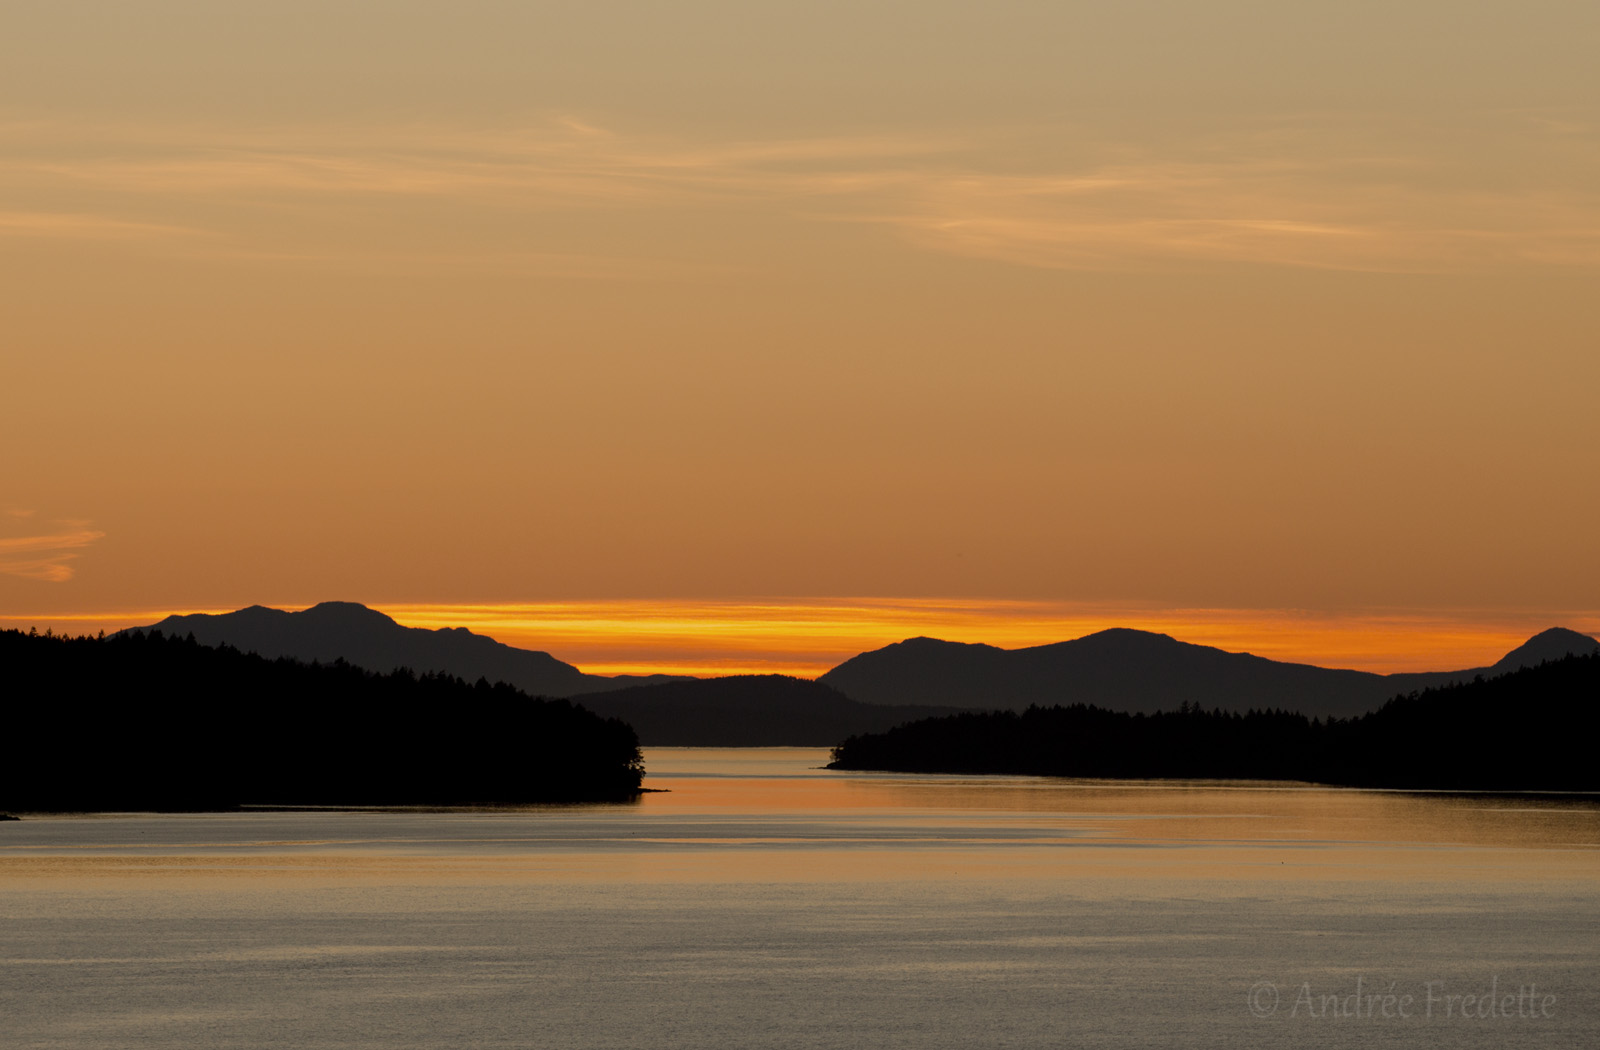 First of May sunset, viewed from Saturna Island, BC. Photo by Andrée Fredette